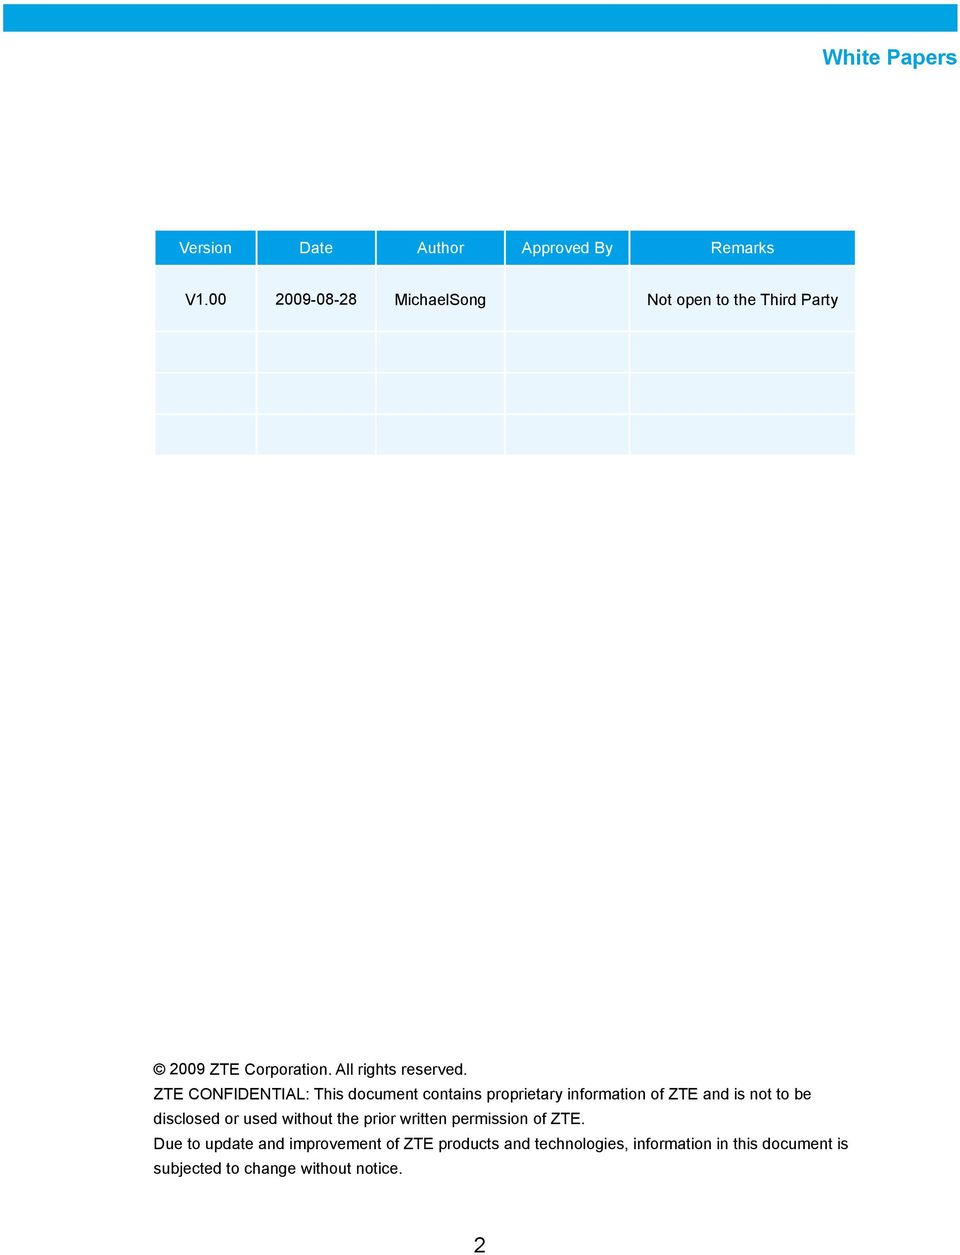 ZTE CONFIDENTIAL: This document contains proprietary information of ZTE and is not to be disclosed or